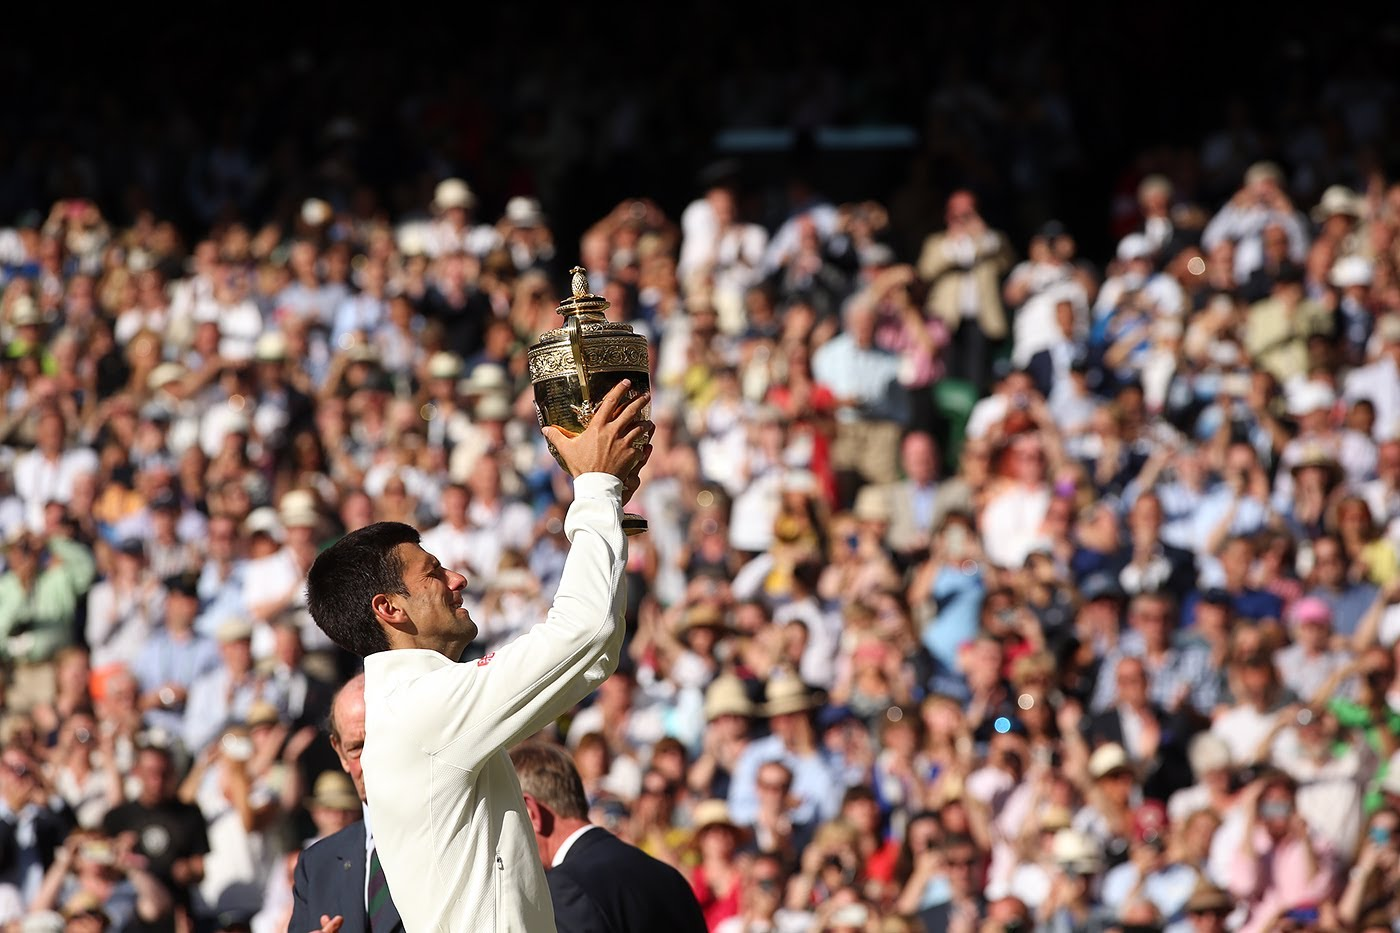 Video: Novak Djokovic – Roger Federer (6:7, 6:4, 7:6, 5:7, 6:4 ), Wimbledon 2014